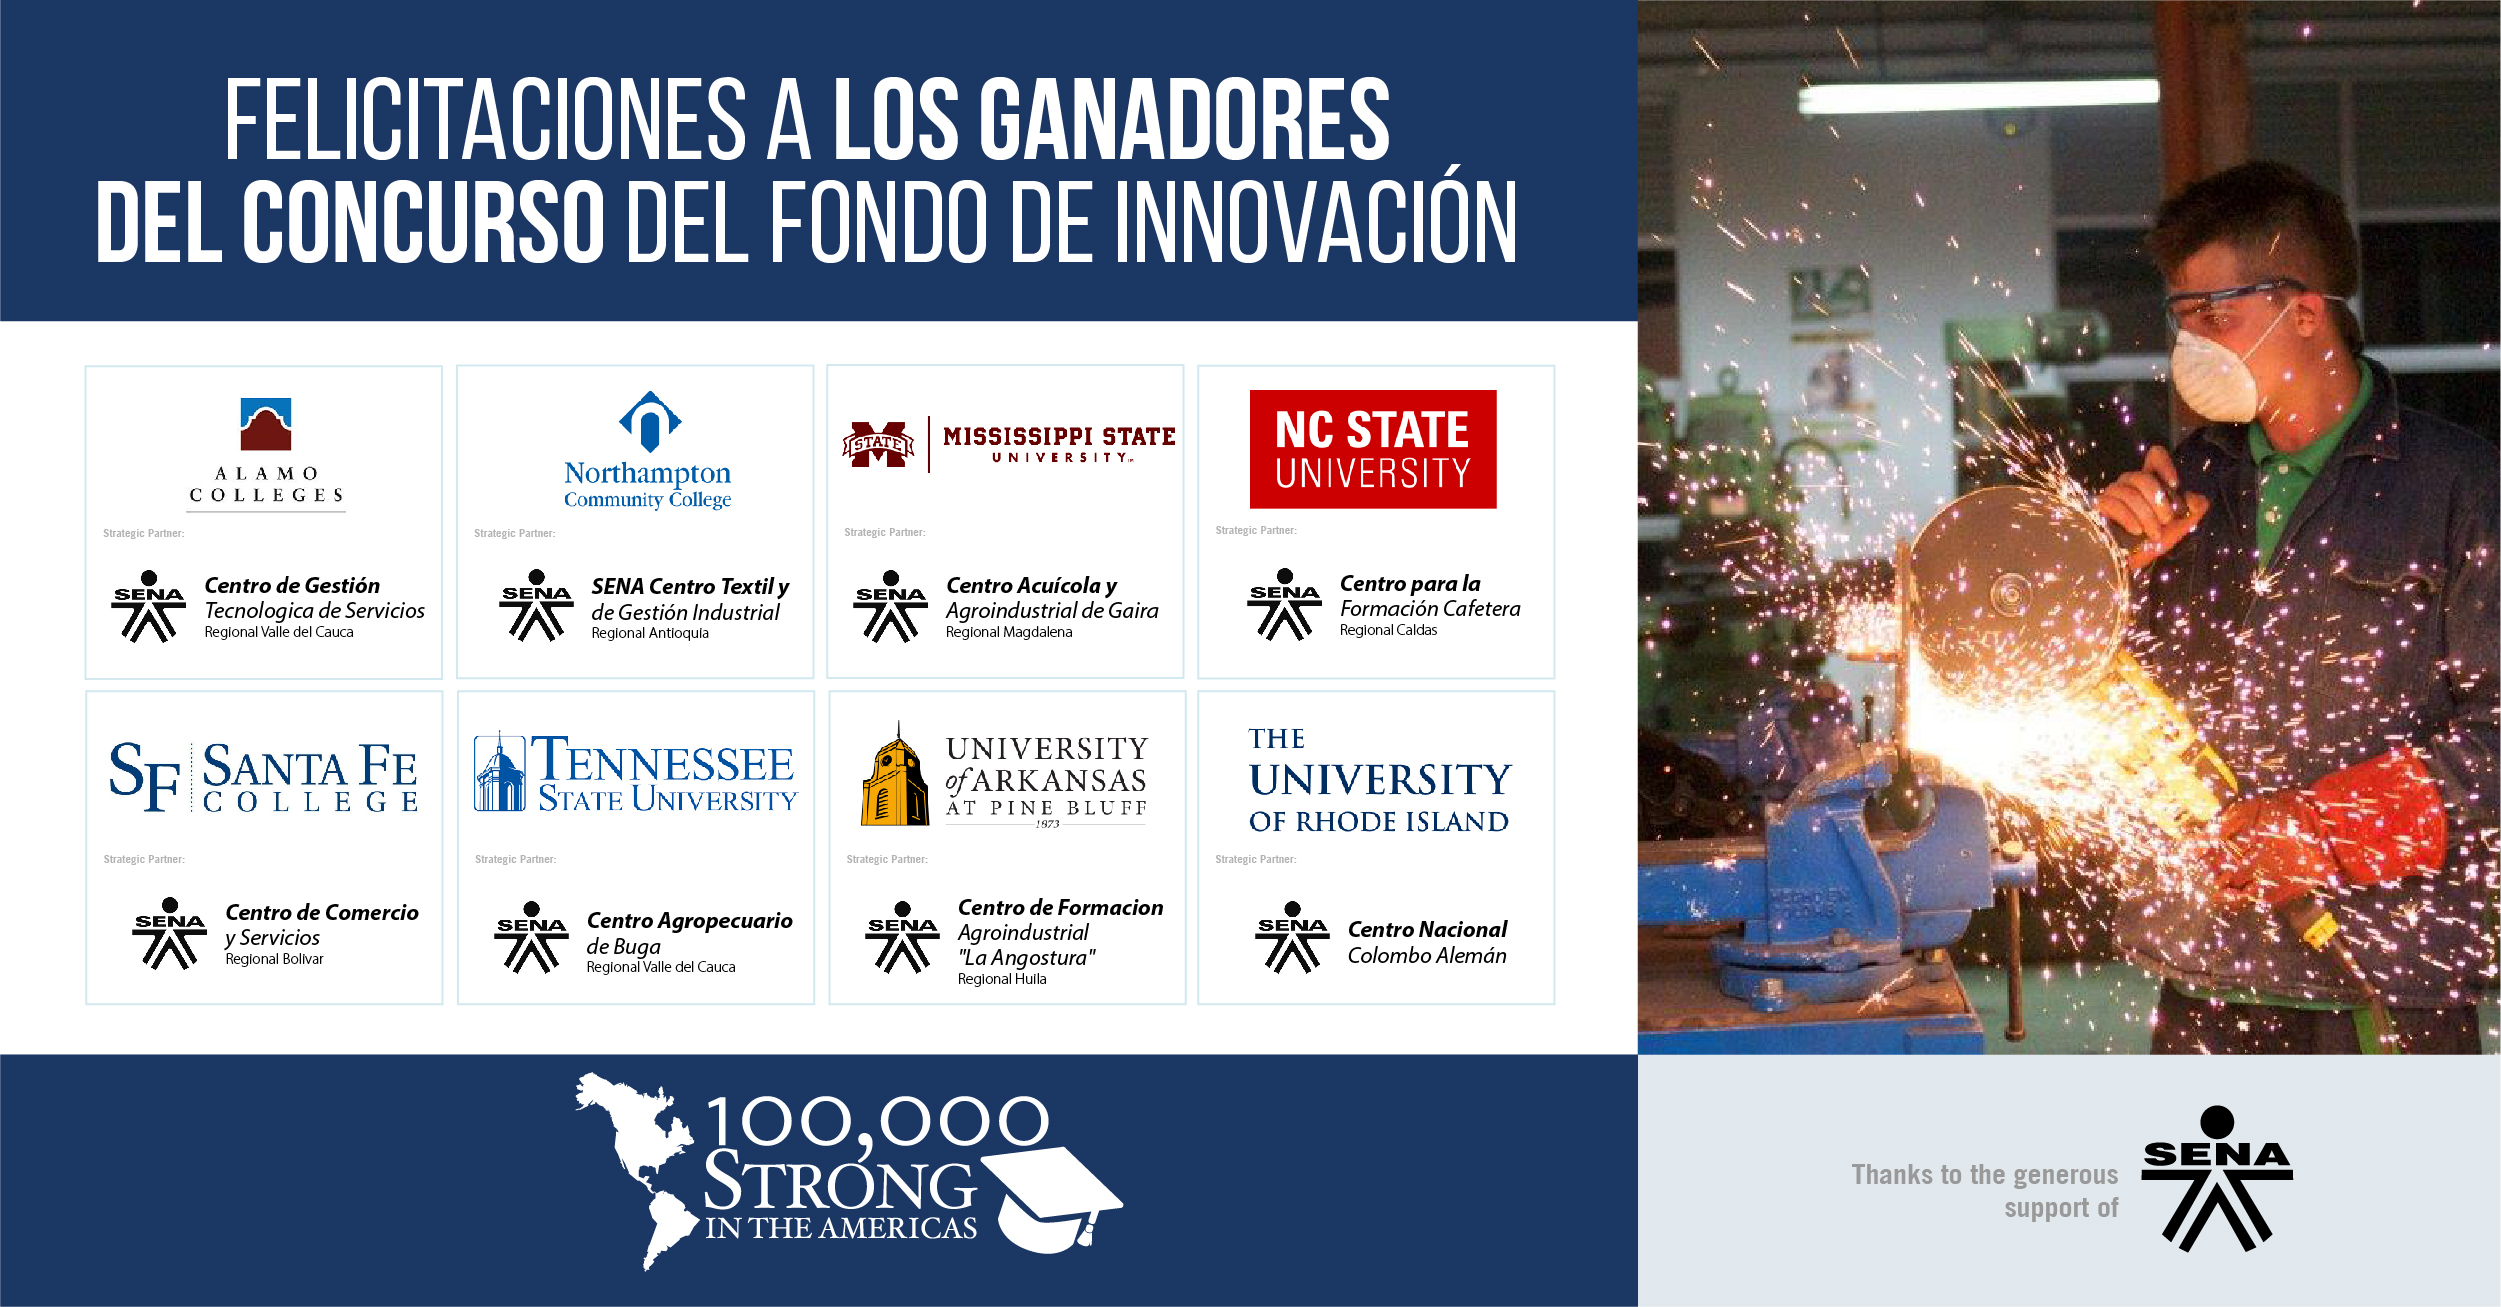 Servicio Nacional de Aprendizaje (SENA) Funds New Partnerships Between  Community Colleges and Universities in the United States and Colombia 32427f476d87